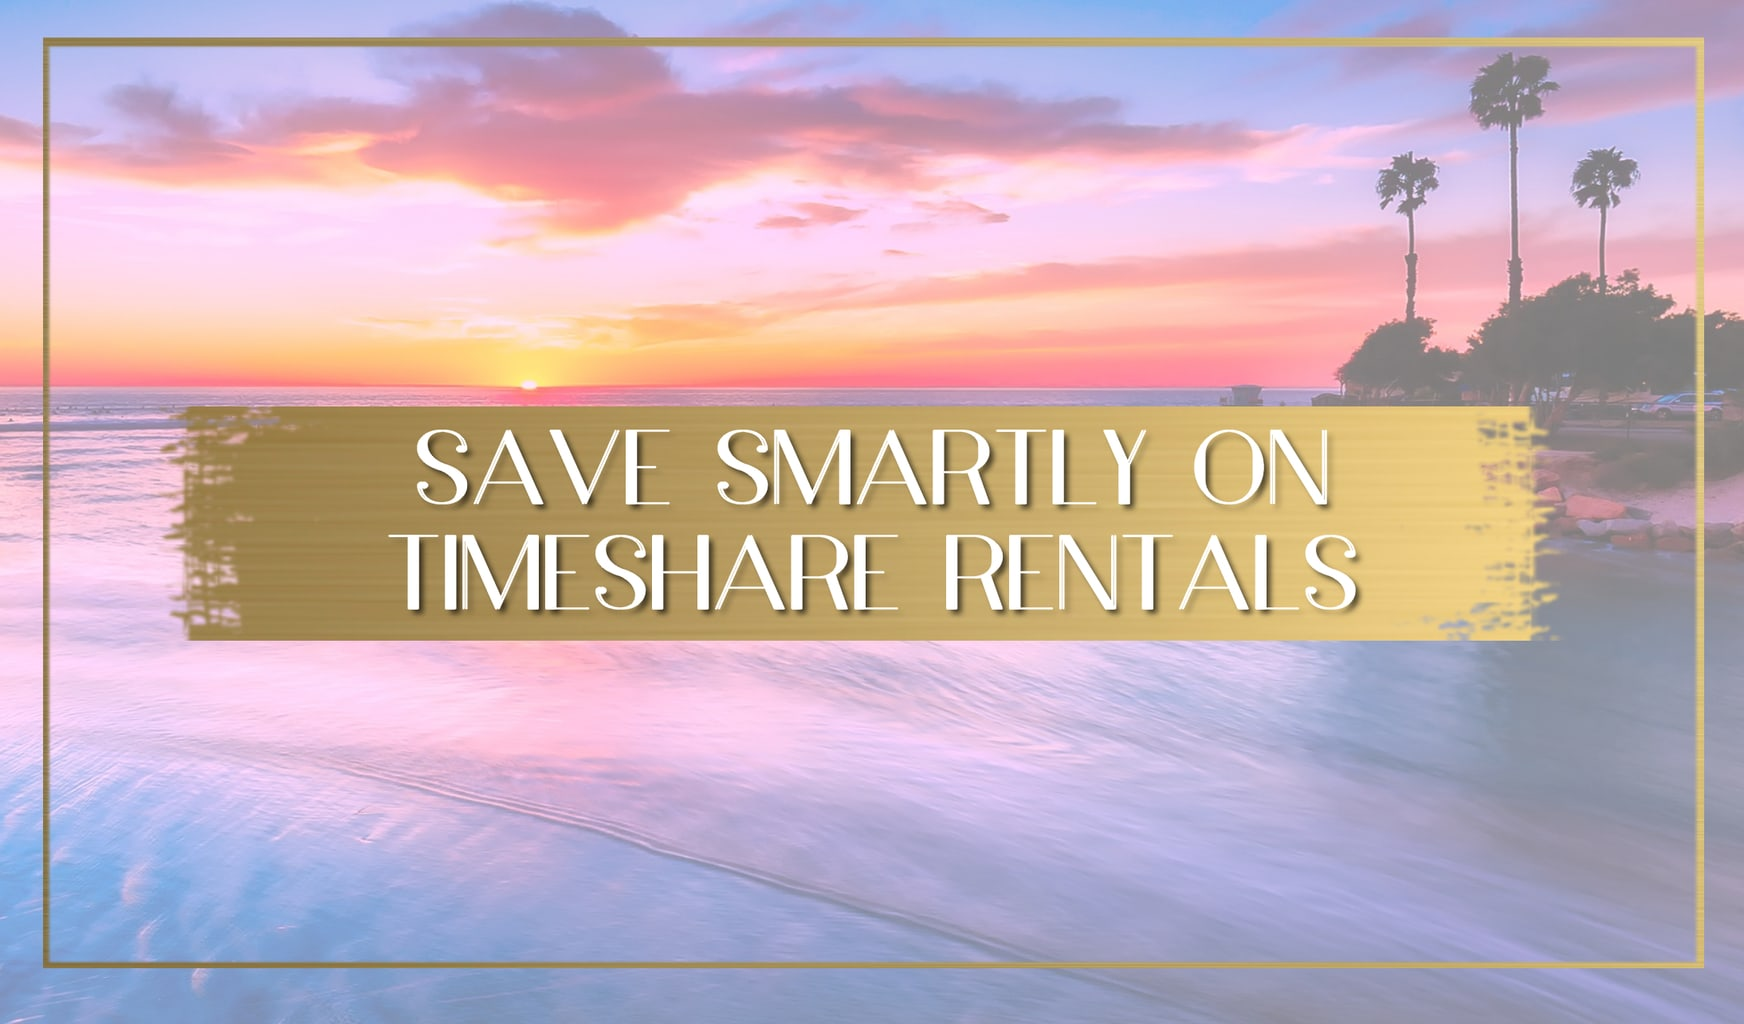 Save smartly on timeshare rentals main